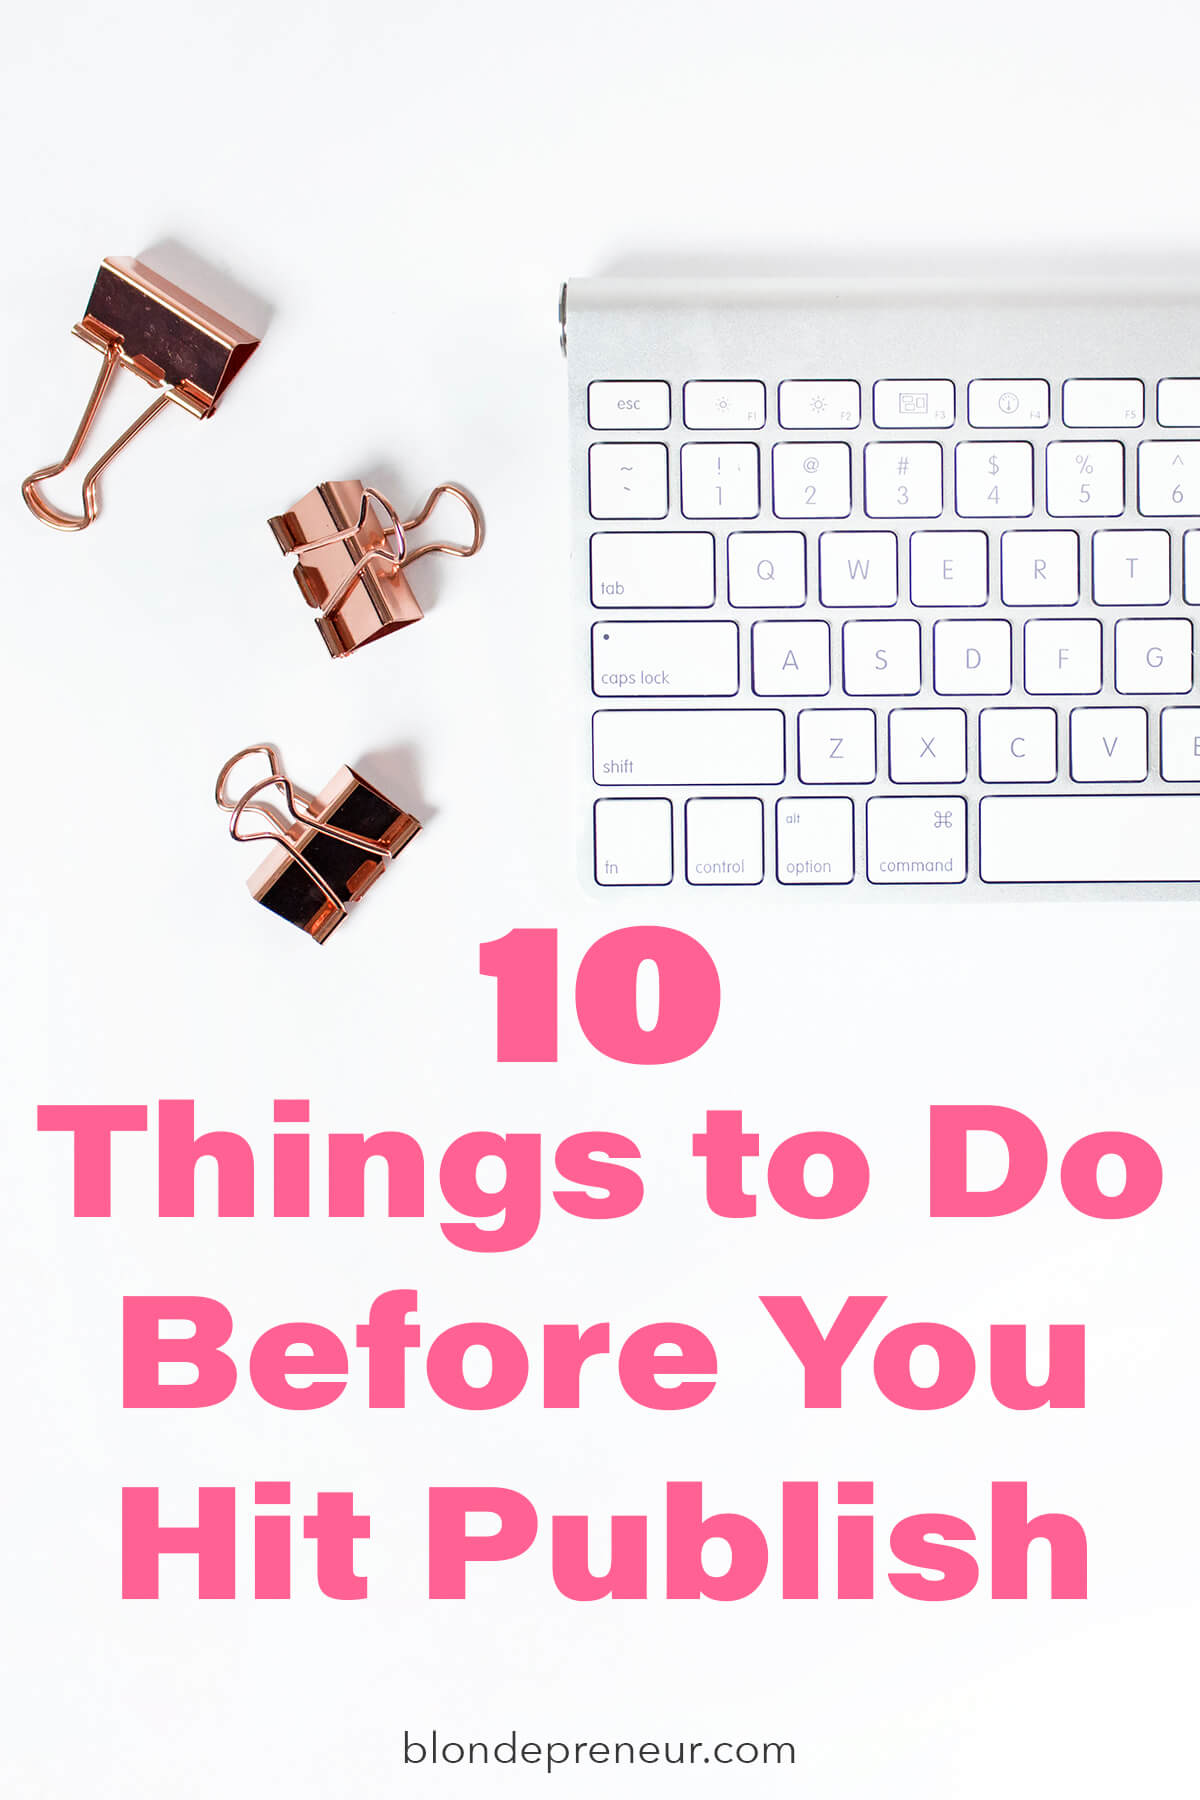 Blogging tips to help you put the finishing touches on your blog post before you hit publish. Learn tips for SEO, catchy titles, and tools to help you write your content in the best way possible!